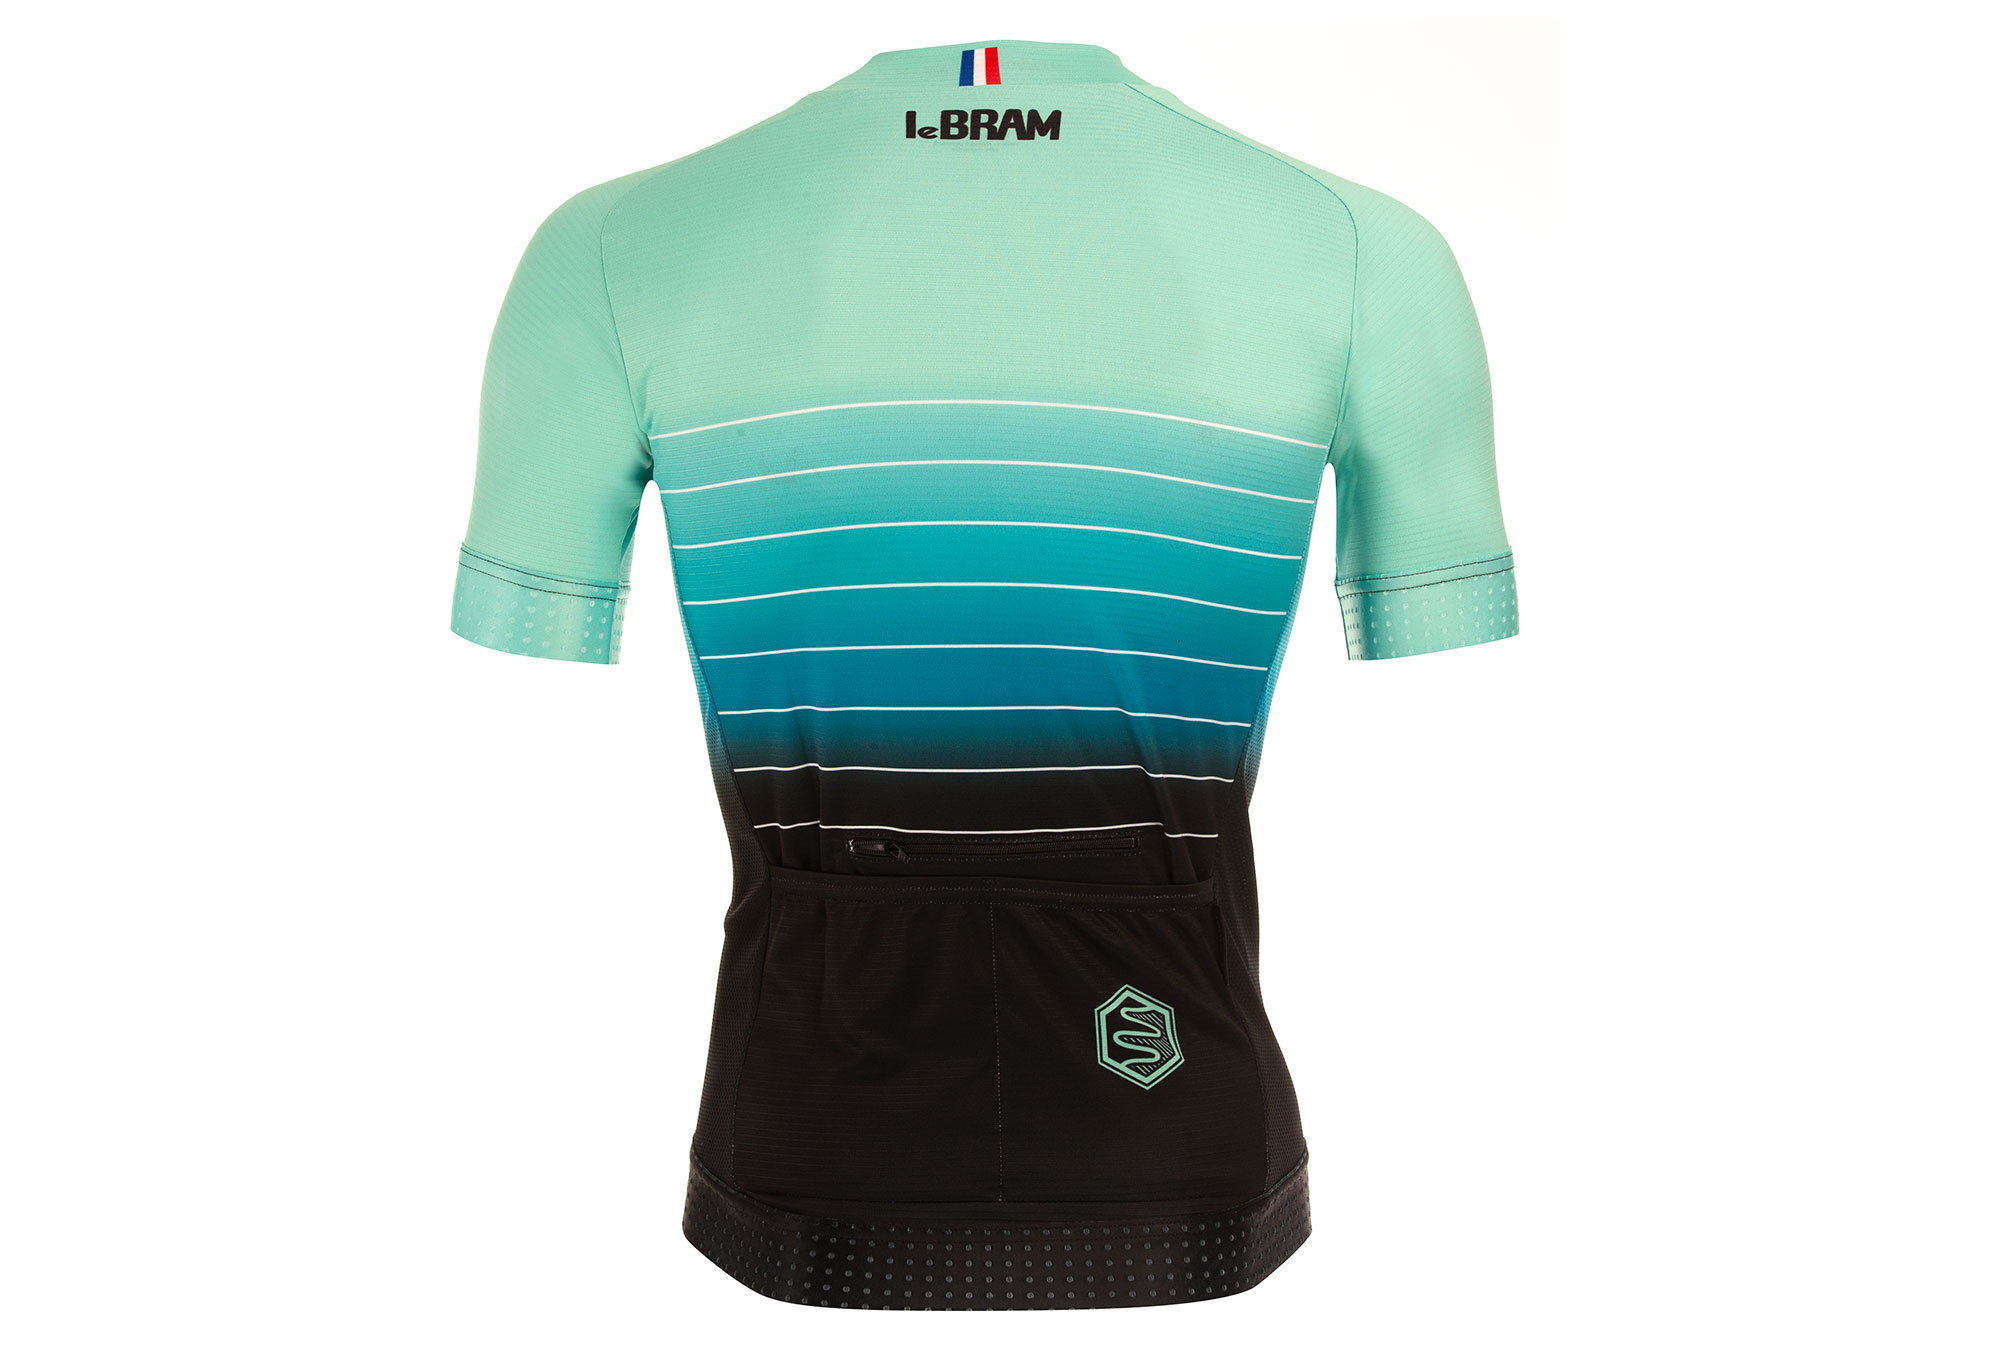 HOMME_ECRE_TURQUOISE3